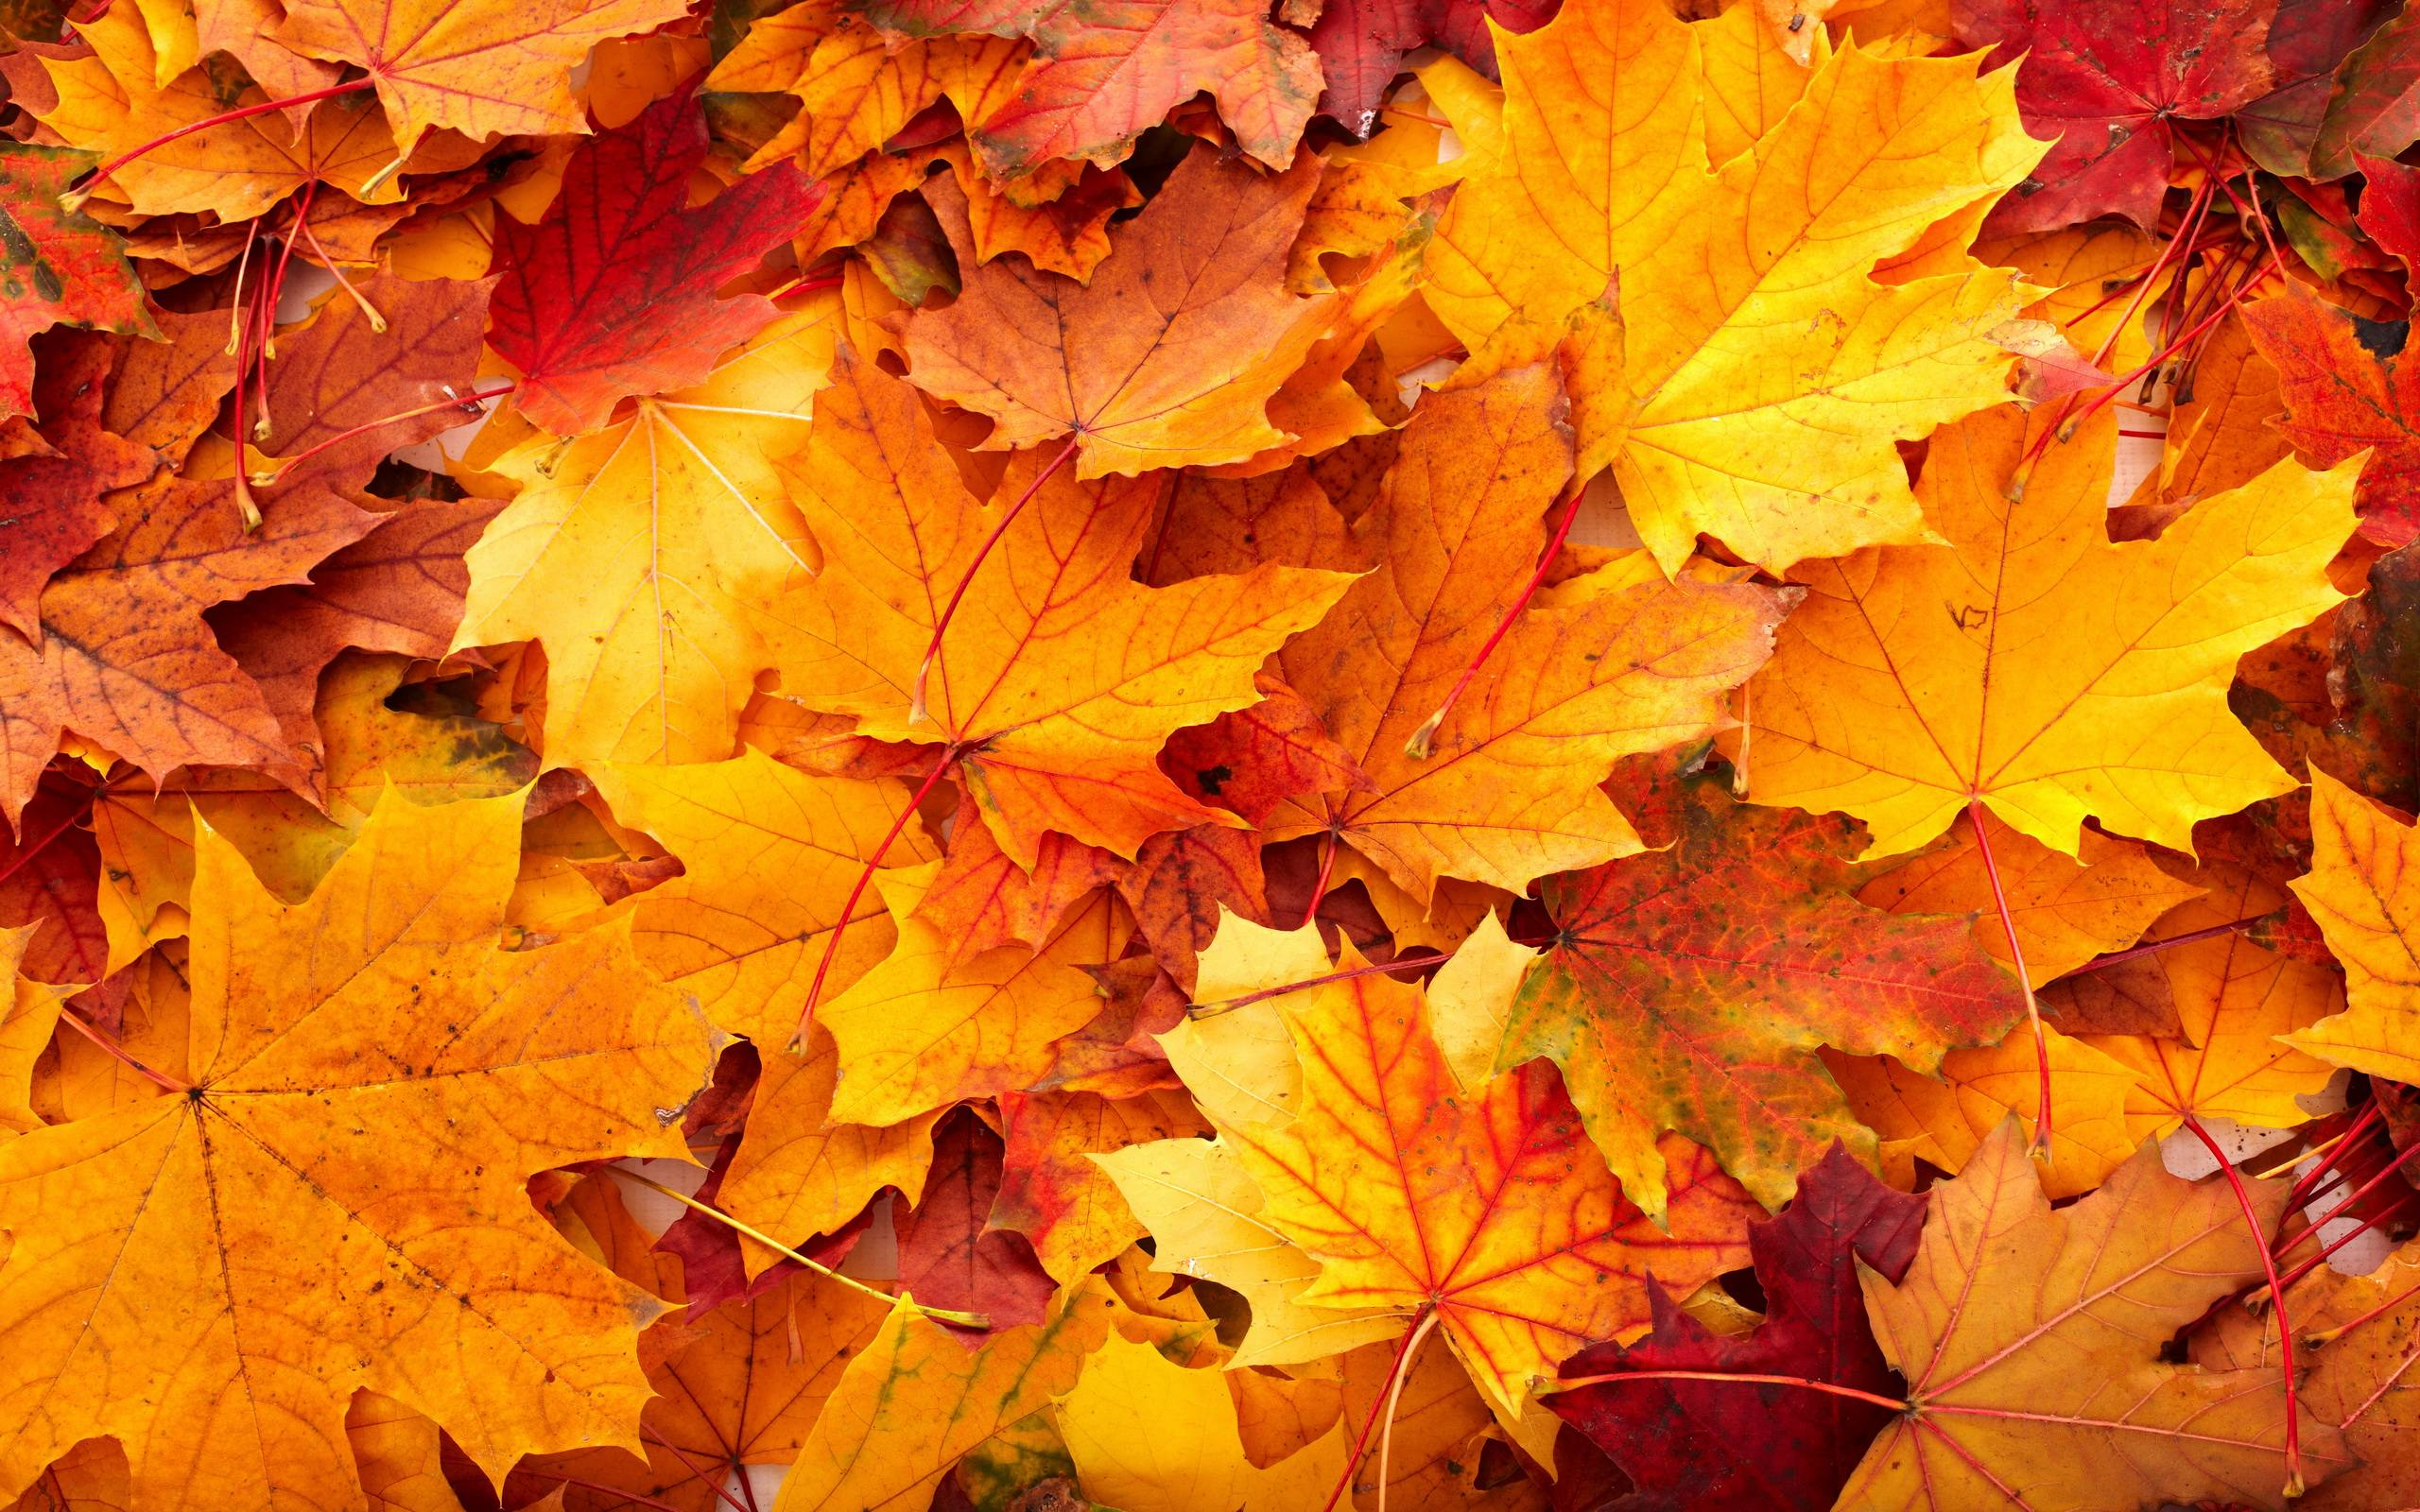 fall leaves nature high resolution wallpaper desktop backgrounds free